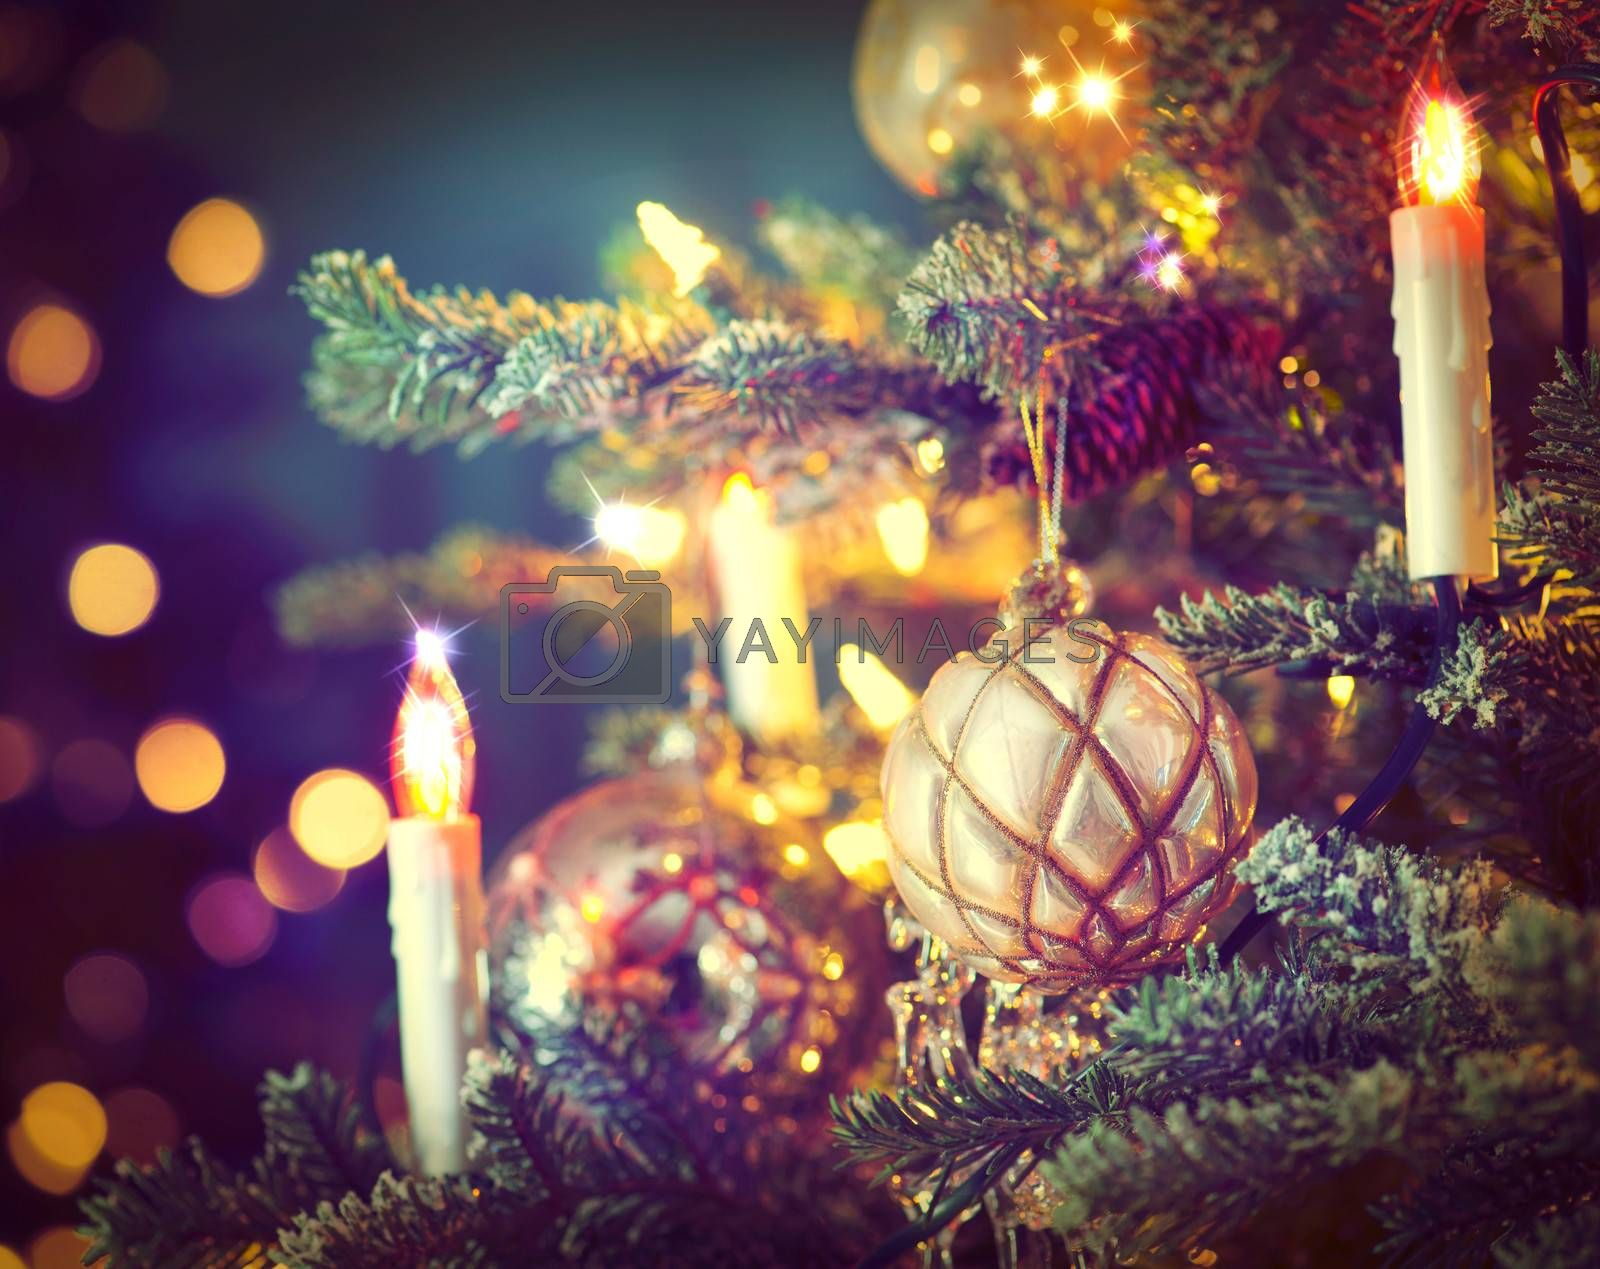 Christmas Tree Decorated with Baubles, Garlands and Candles